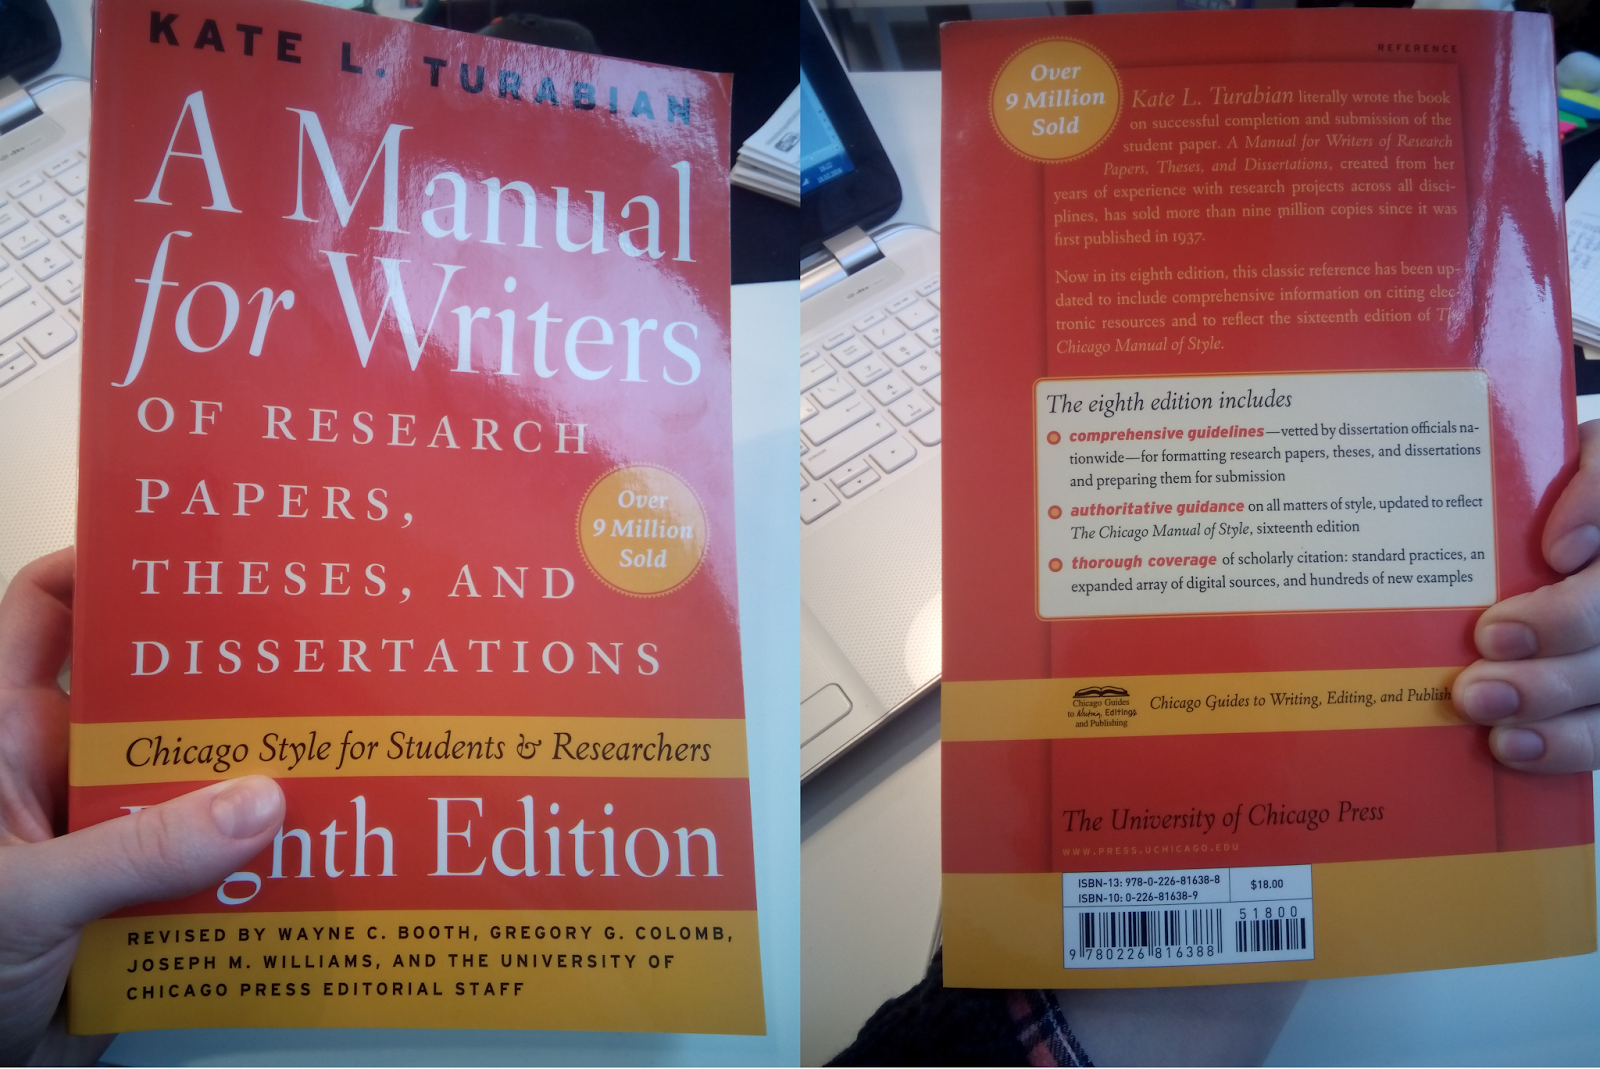 022 Manual For Writers Of Research Papers Theses And Dissertations Paper Sensational A Ed. 8 Turabian Ninth Edition Full